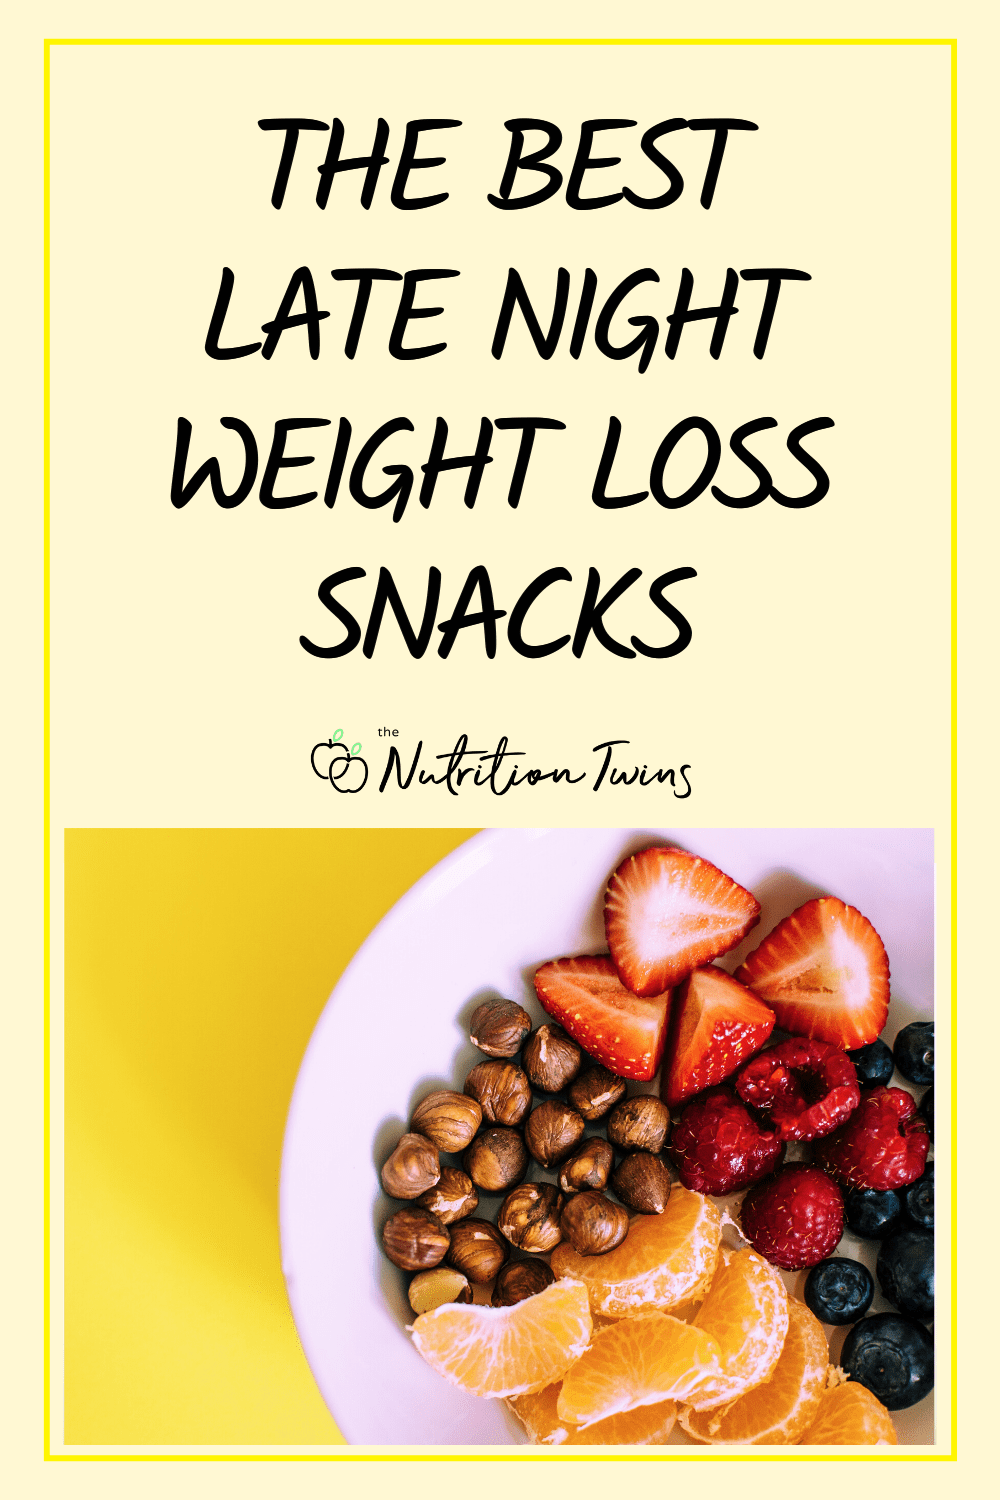 7 Best Late Night Snacks For Weight Loss Nutrition Twins